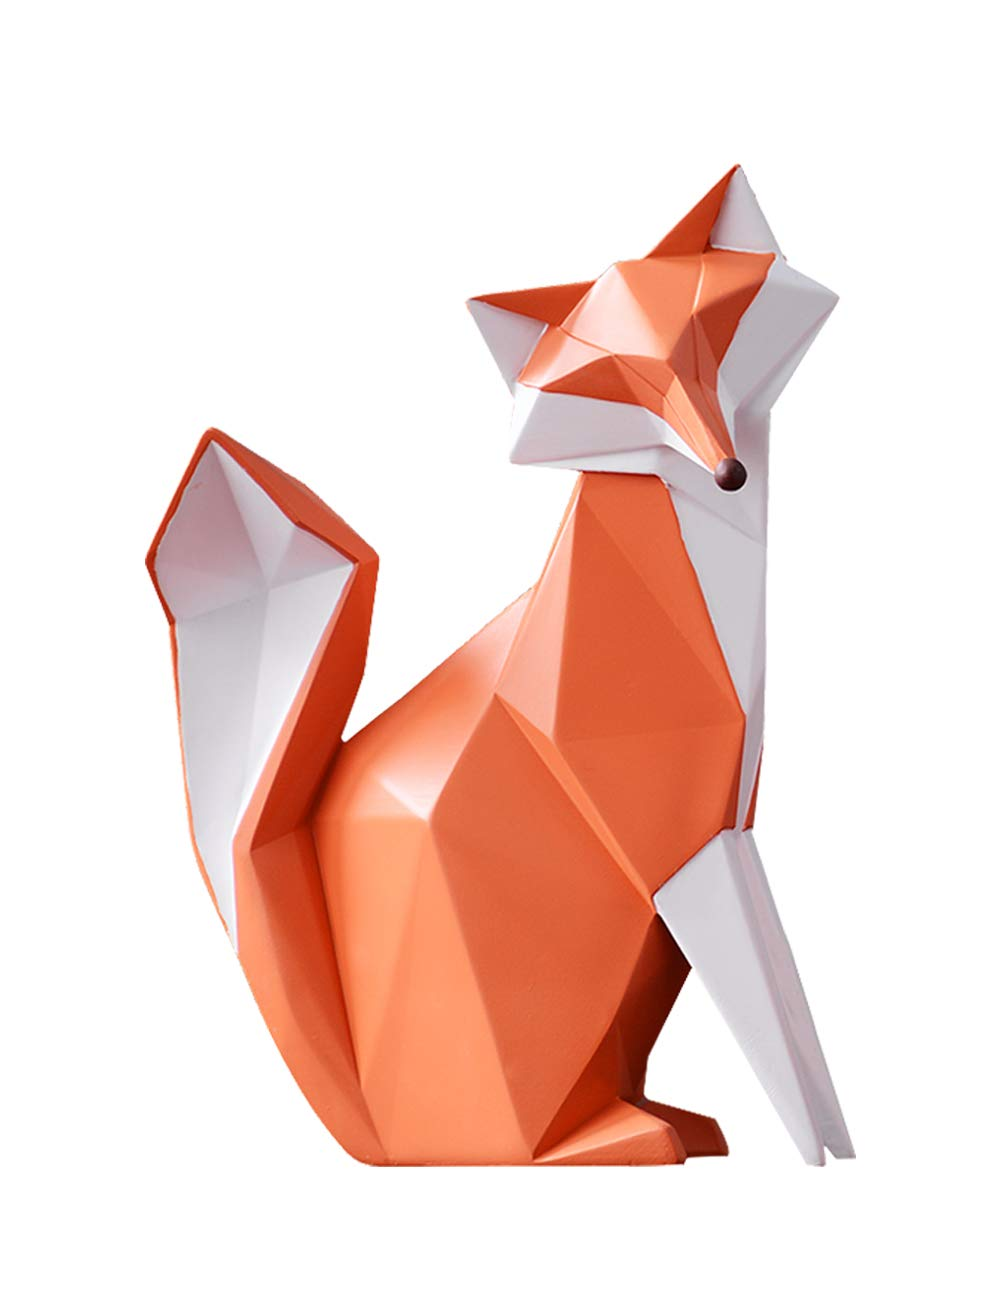 HomeBerry Fox Figurine Statue Sculpture Animal Home Decor Decoration Gift Arts Crafts Hand Painted Polyreisn 21cmH